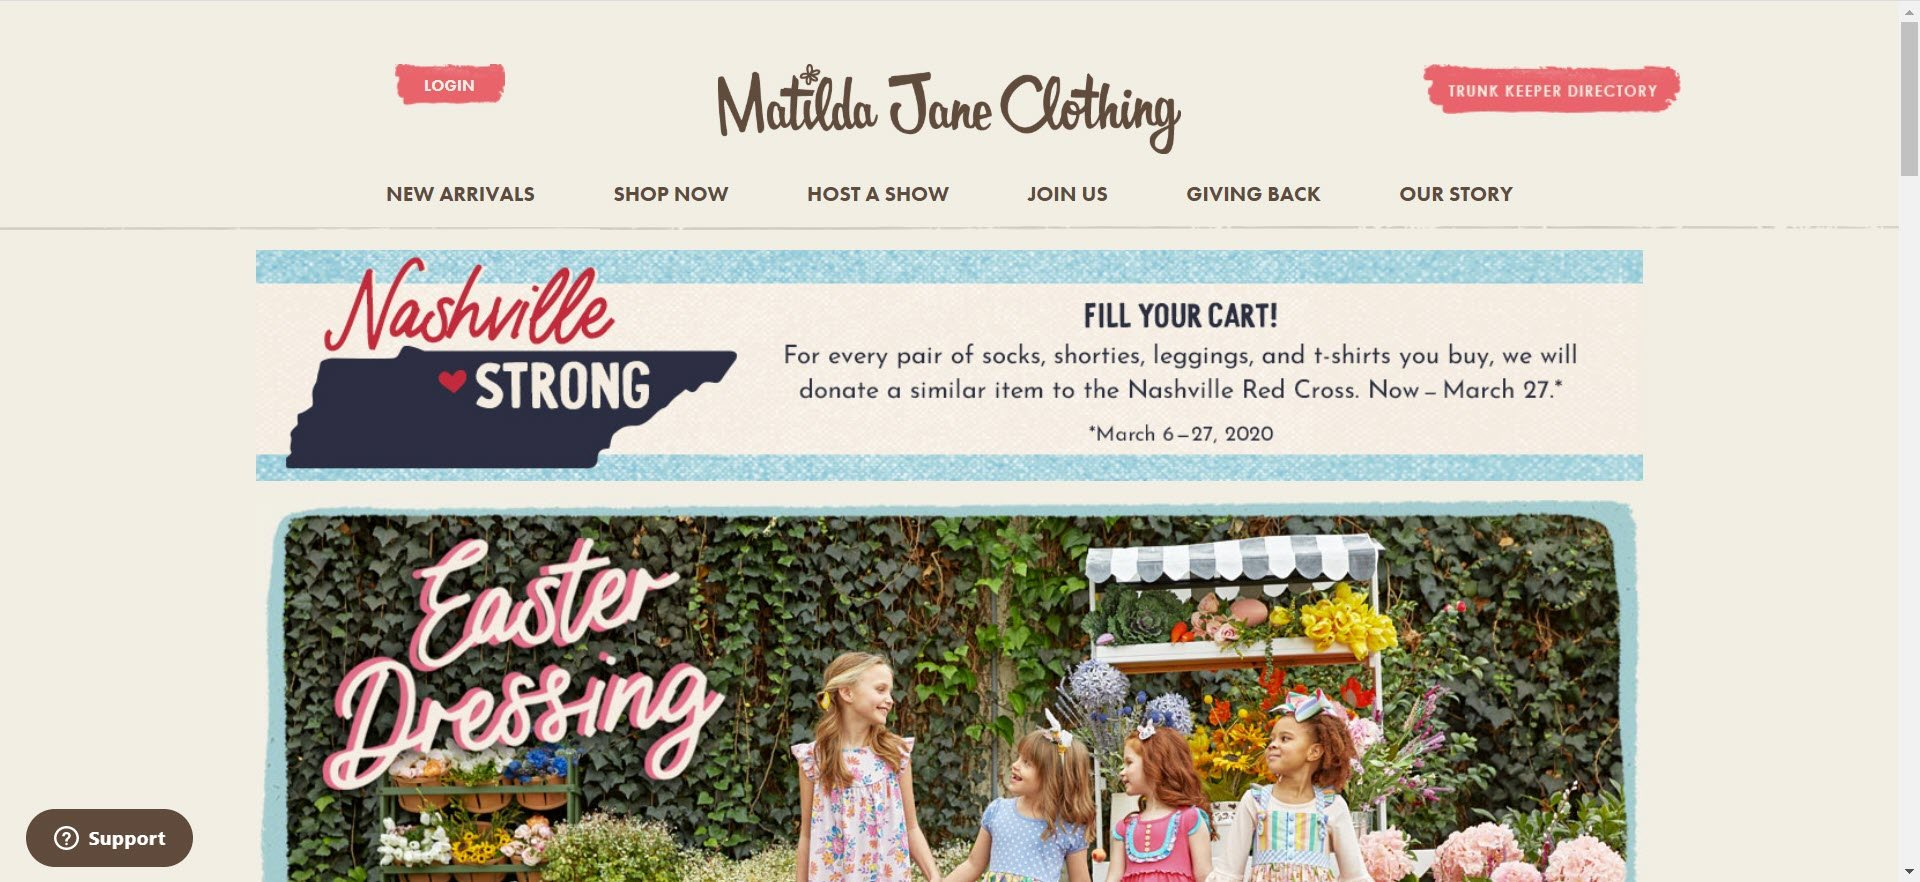 Matilda Jane Clothing MLM Review - Home